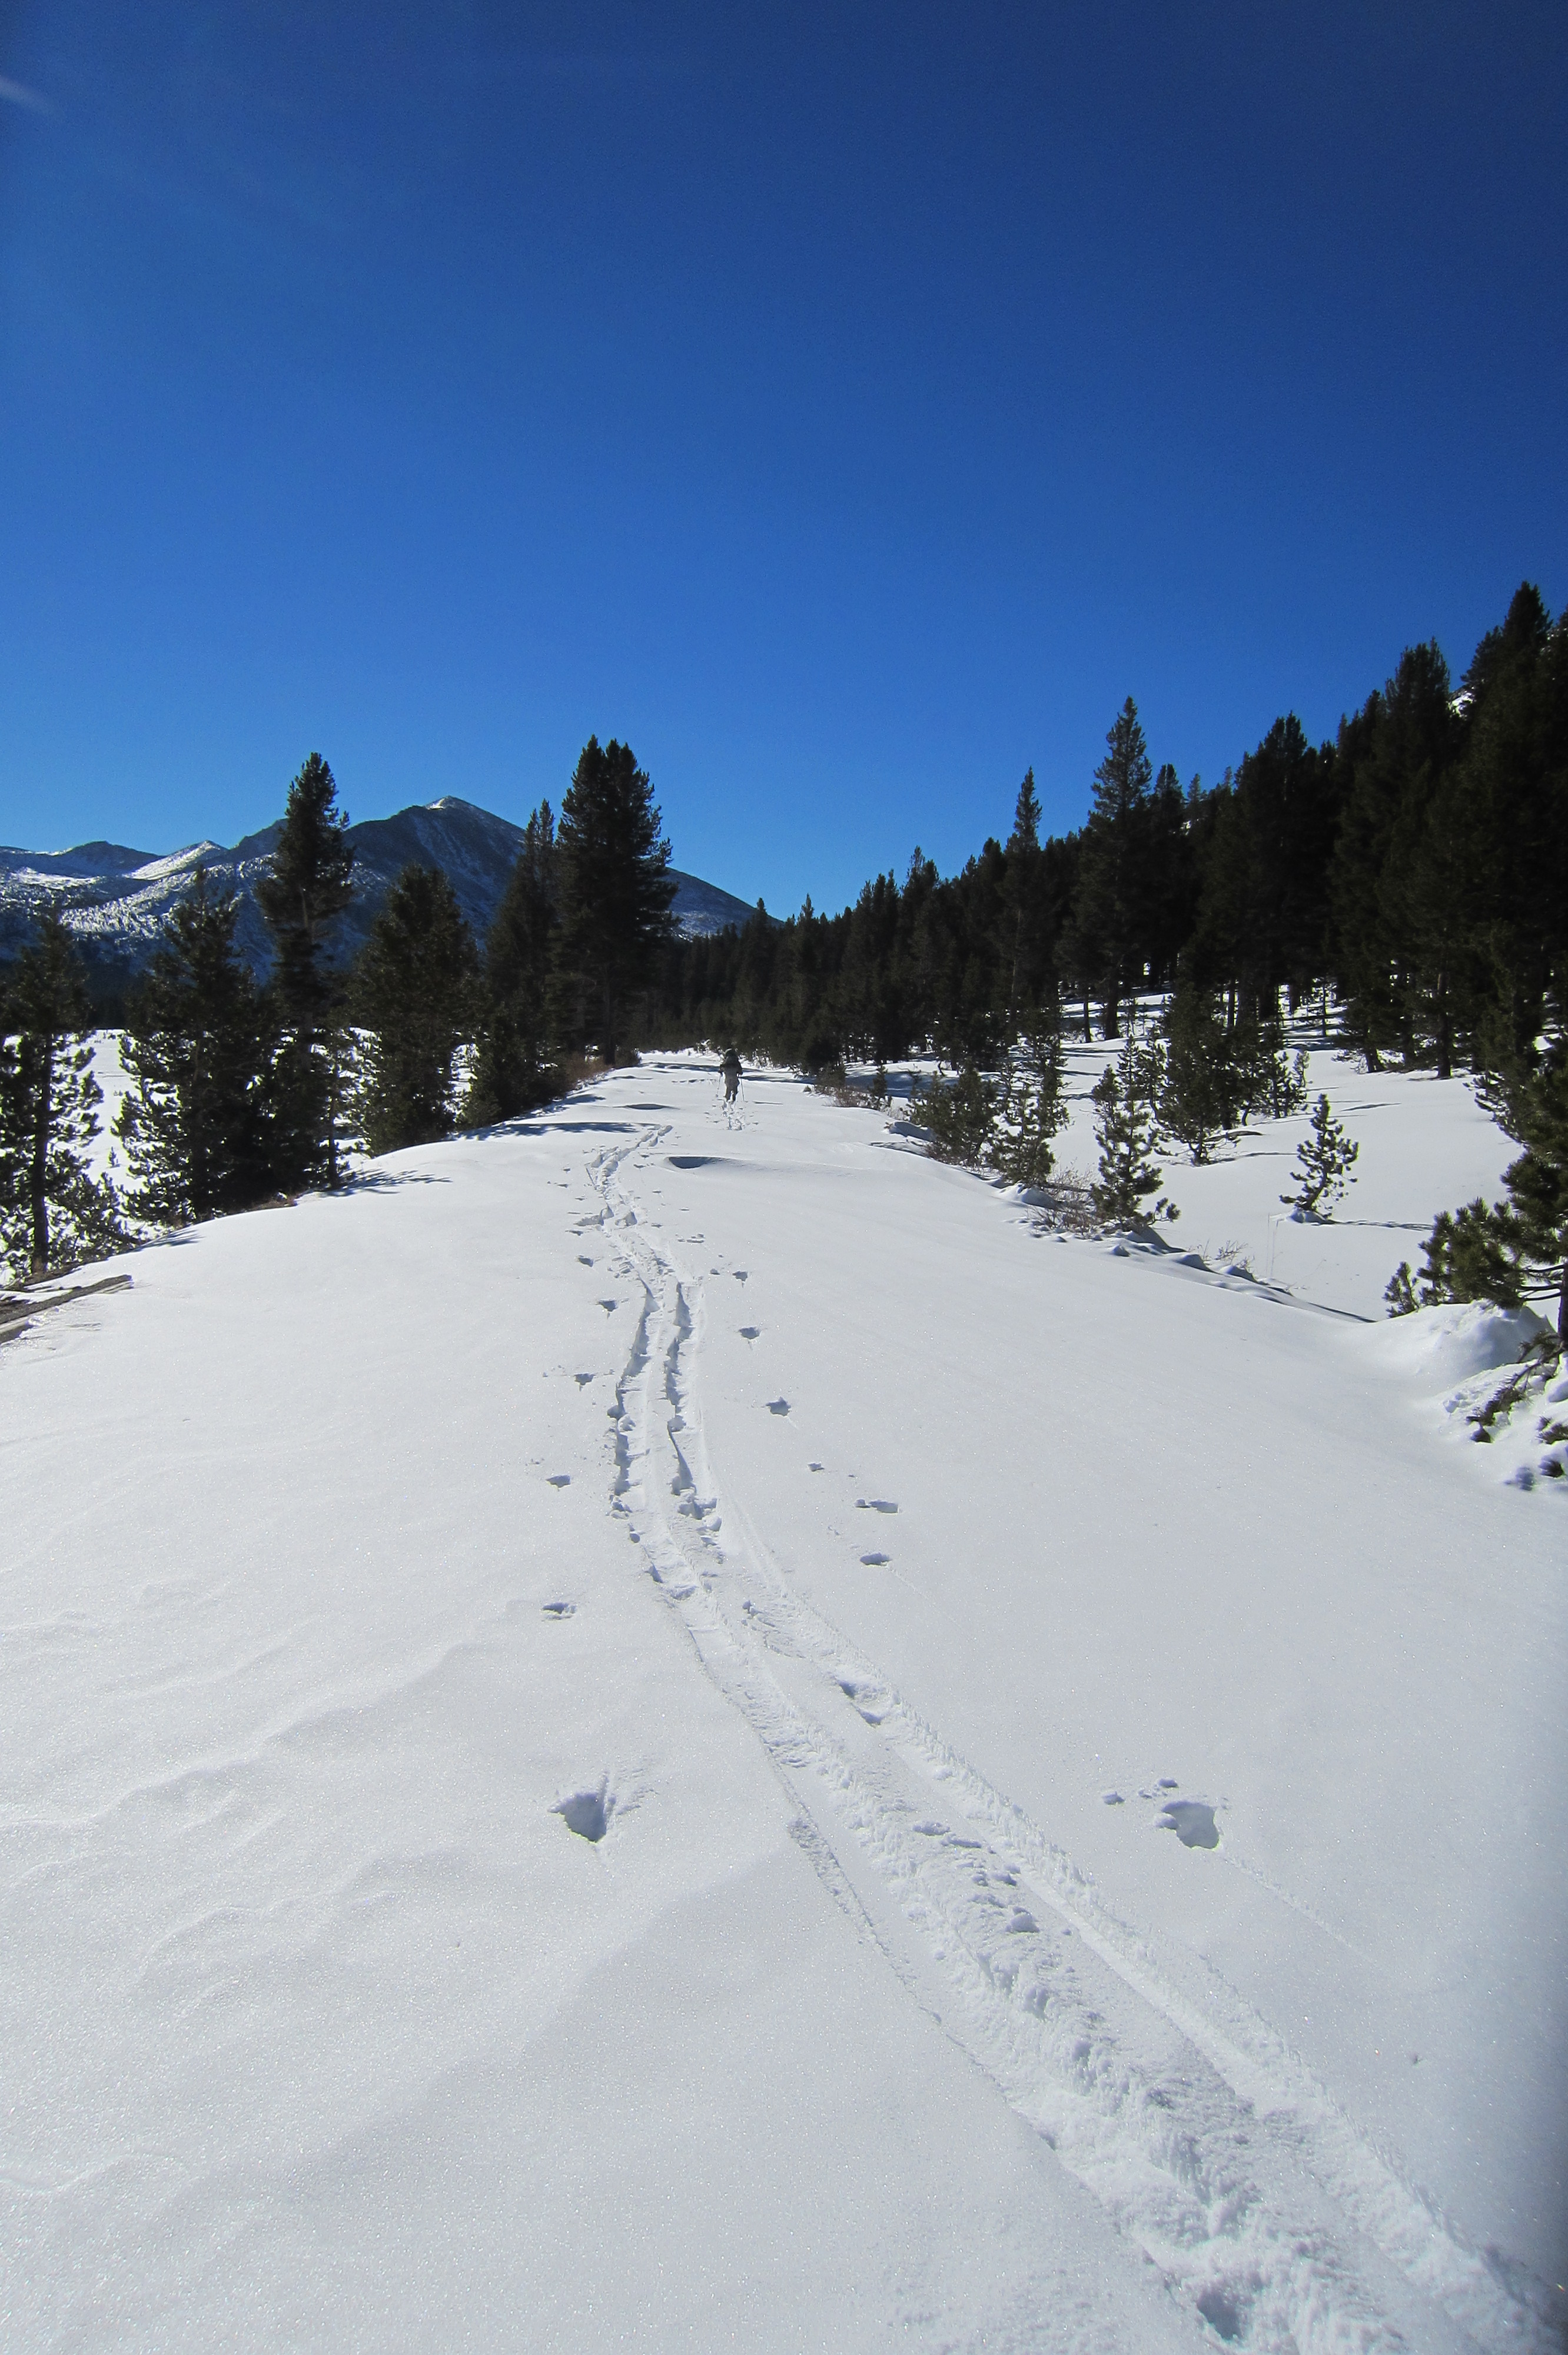 Skiing on the Tioga Road near Dana Meadows, December 14, 2013